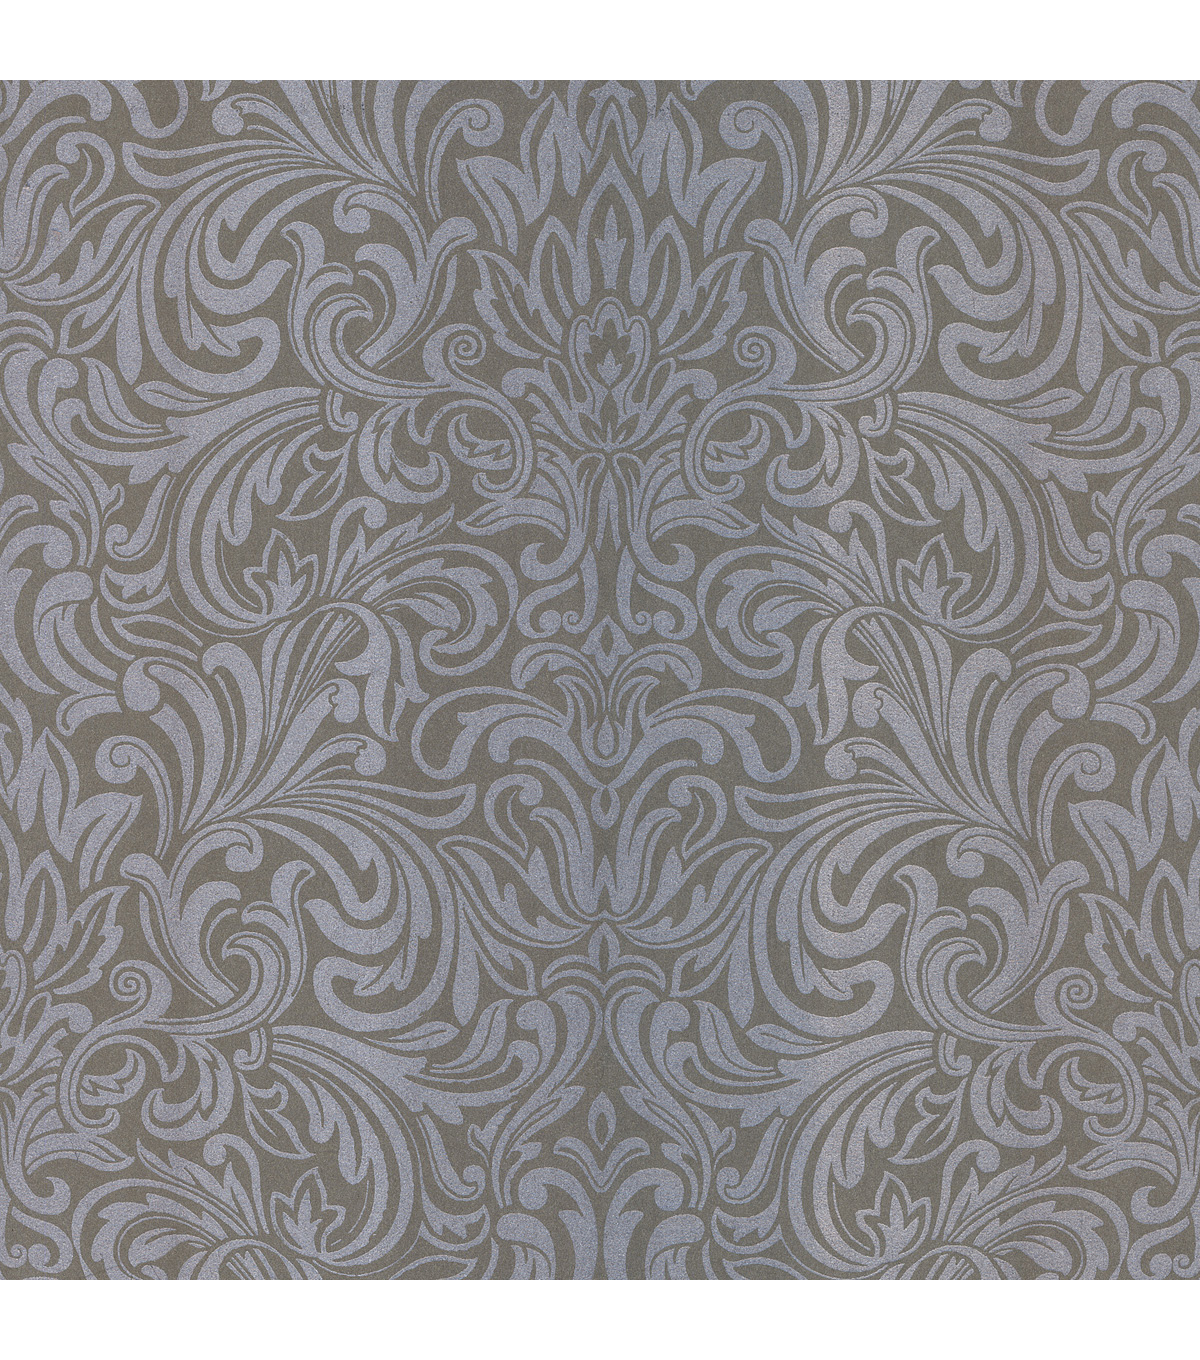 Royale Silver Wavy Damask Wallpaper